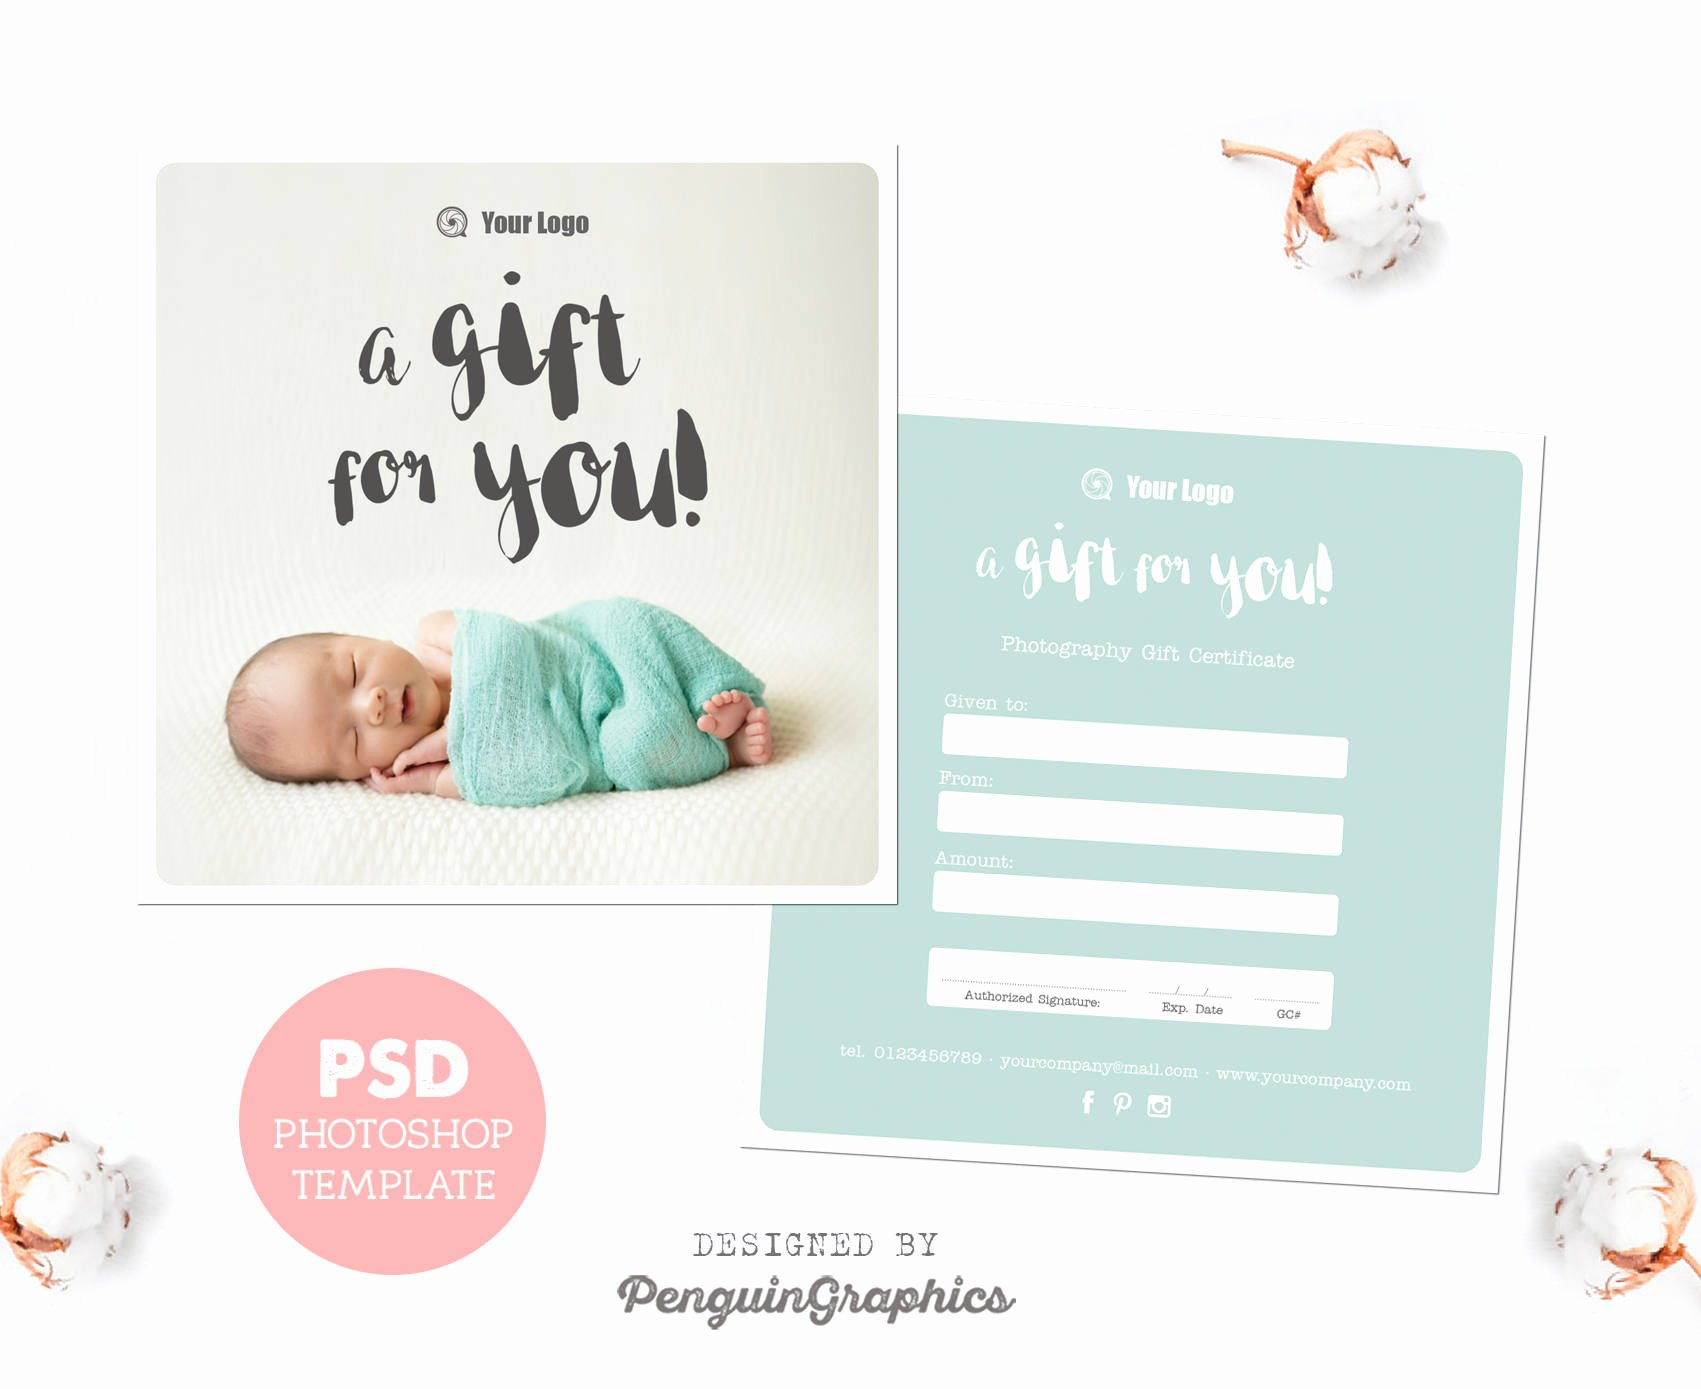 Photography Session Gift Certificate Template Elegant Gift Certificate Template Graphy Mini Session T Card